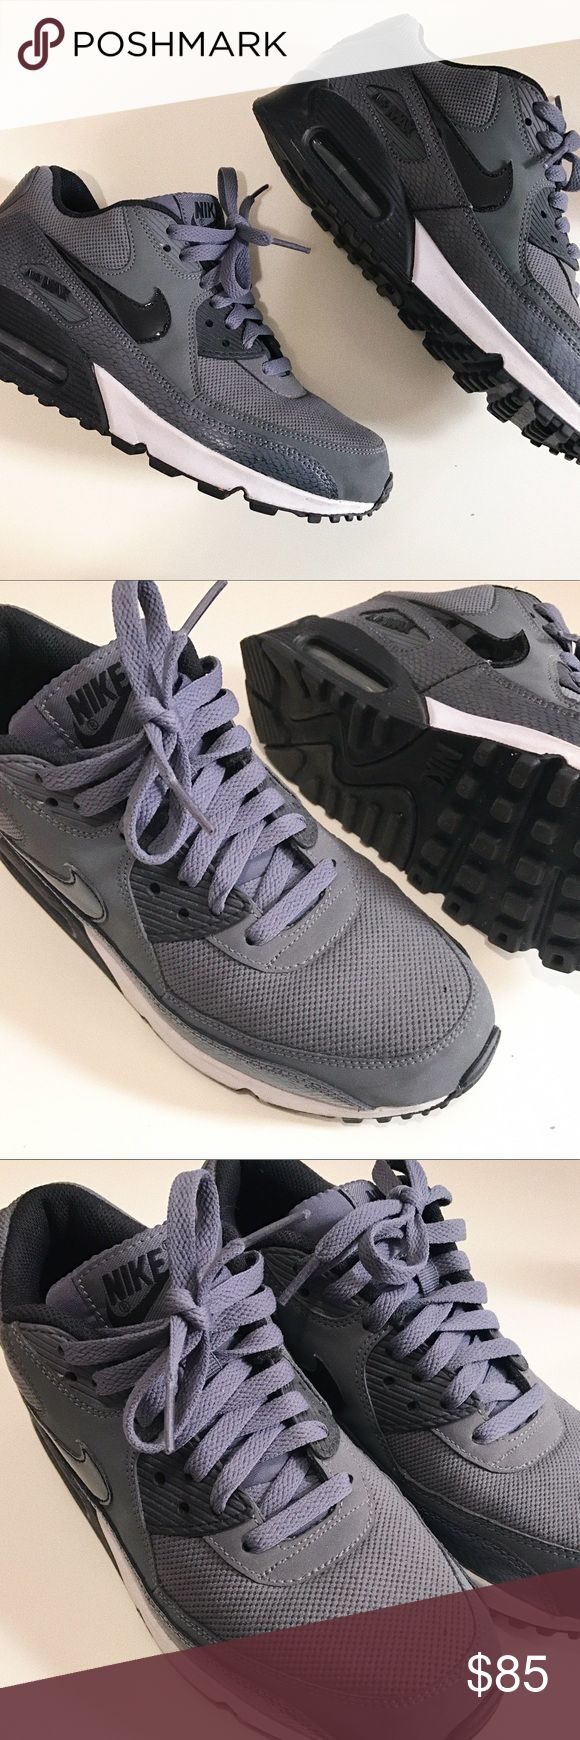 NIKE air max women size8 Nike air max women size 8, without box. only wore two times Nike Shoes Sneakers